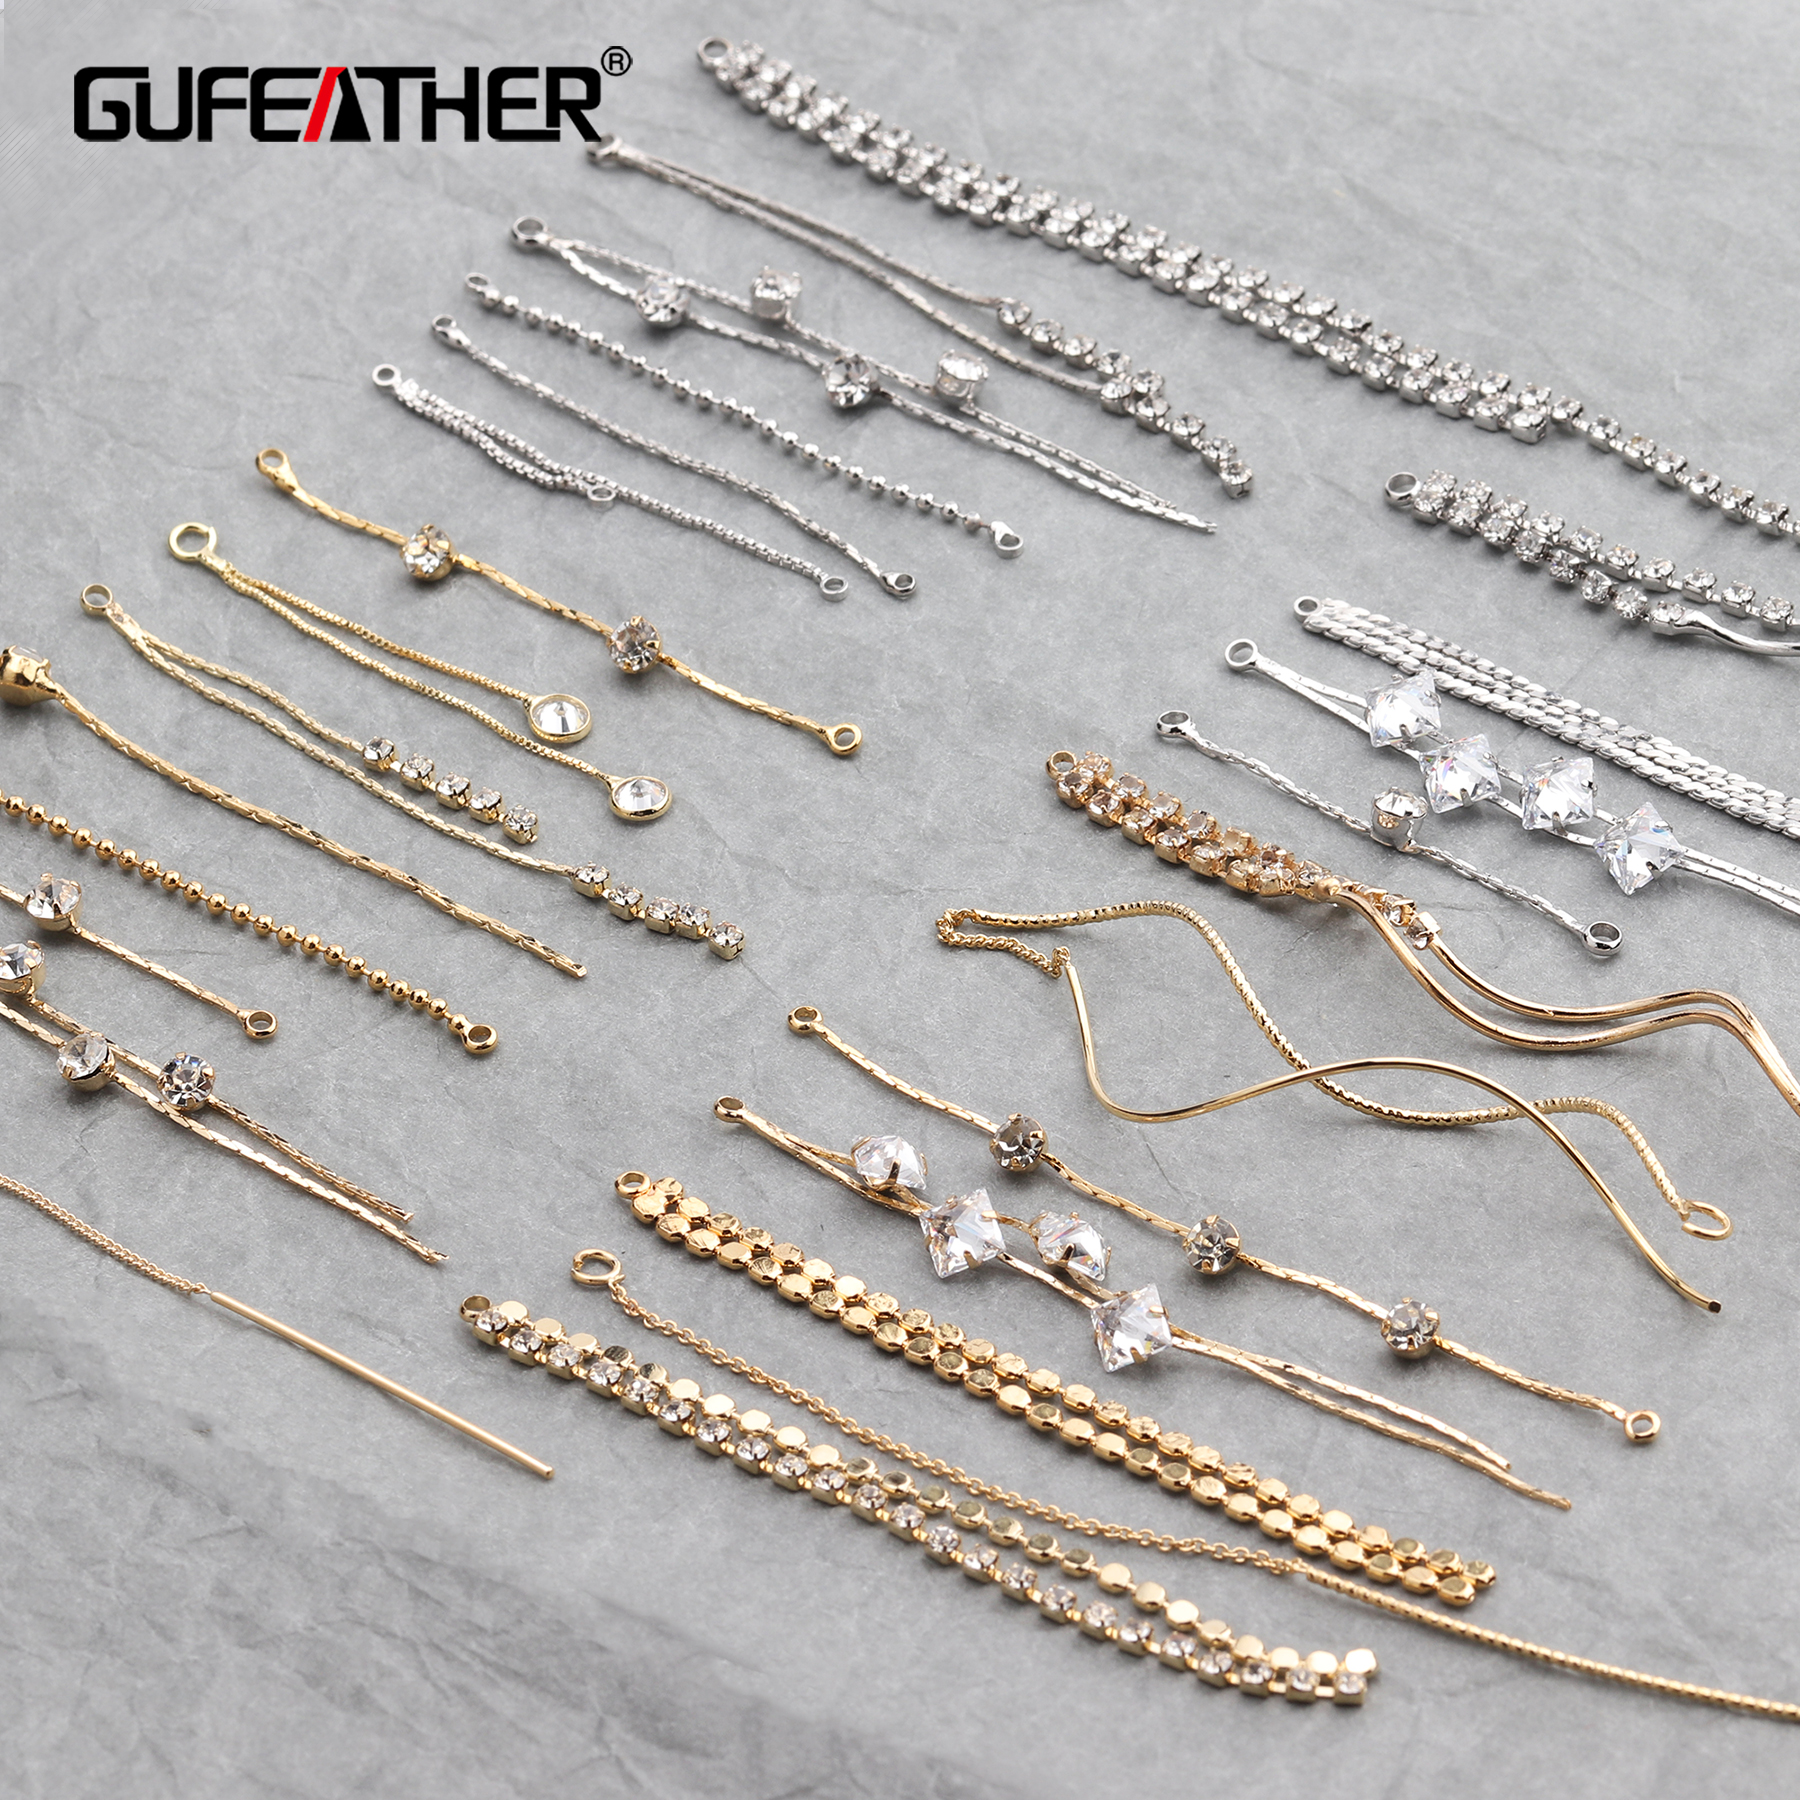 GUFEATHER M294,jewelry Making,jewelry Findings,diy Jewelry,18k Gold,copper Plated Gold,stable Quality,korean Chain,diy Earrings